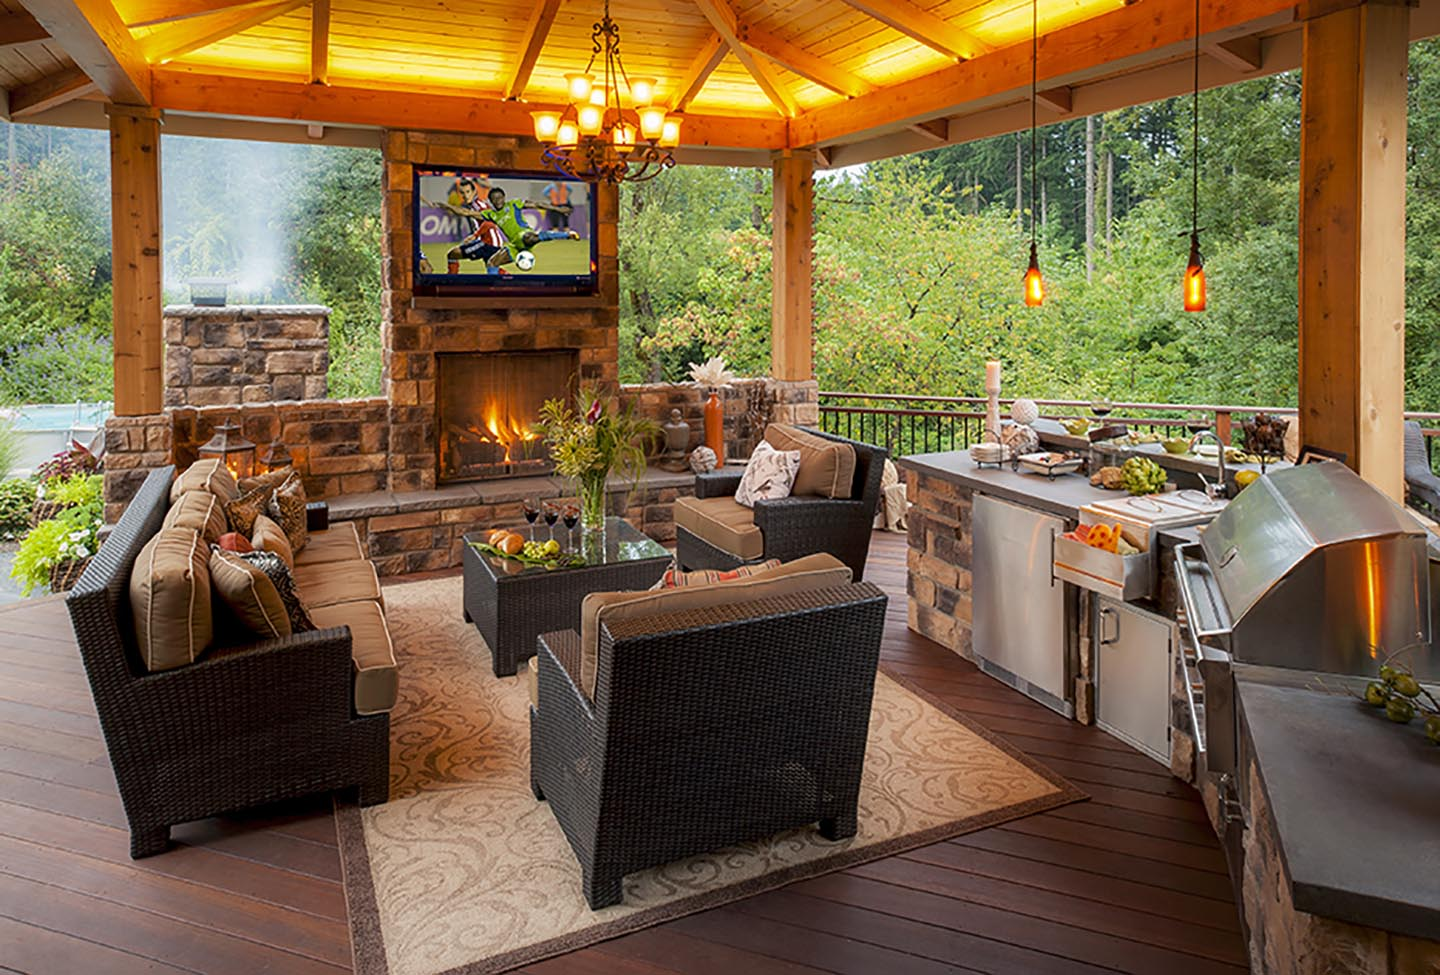 Modern Rustic Cabin Montana furthermore Lakeside Home Rooftop Garden Entry Austin as well 216088 furthermore Indoor Gardens n 3379258 further millhousecottages co. on rustic modern lake house